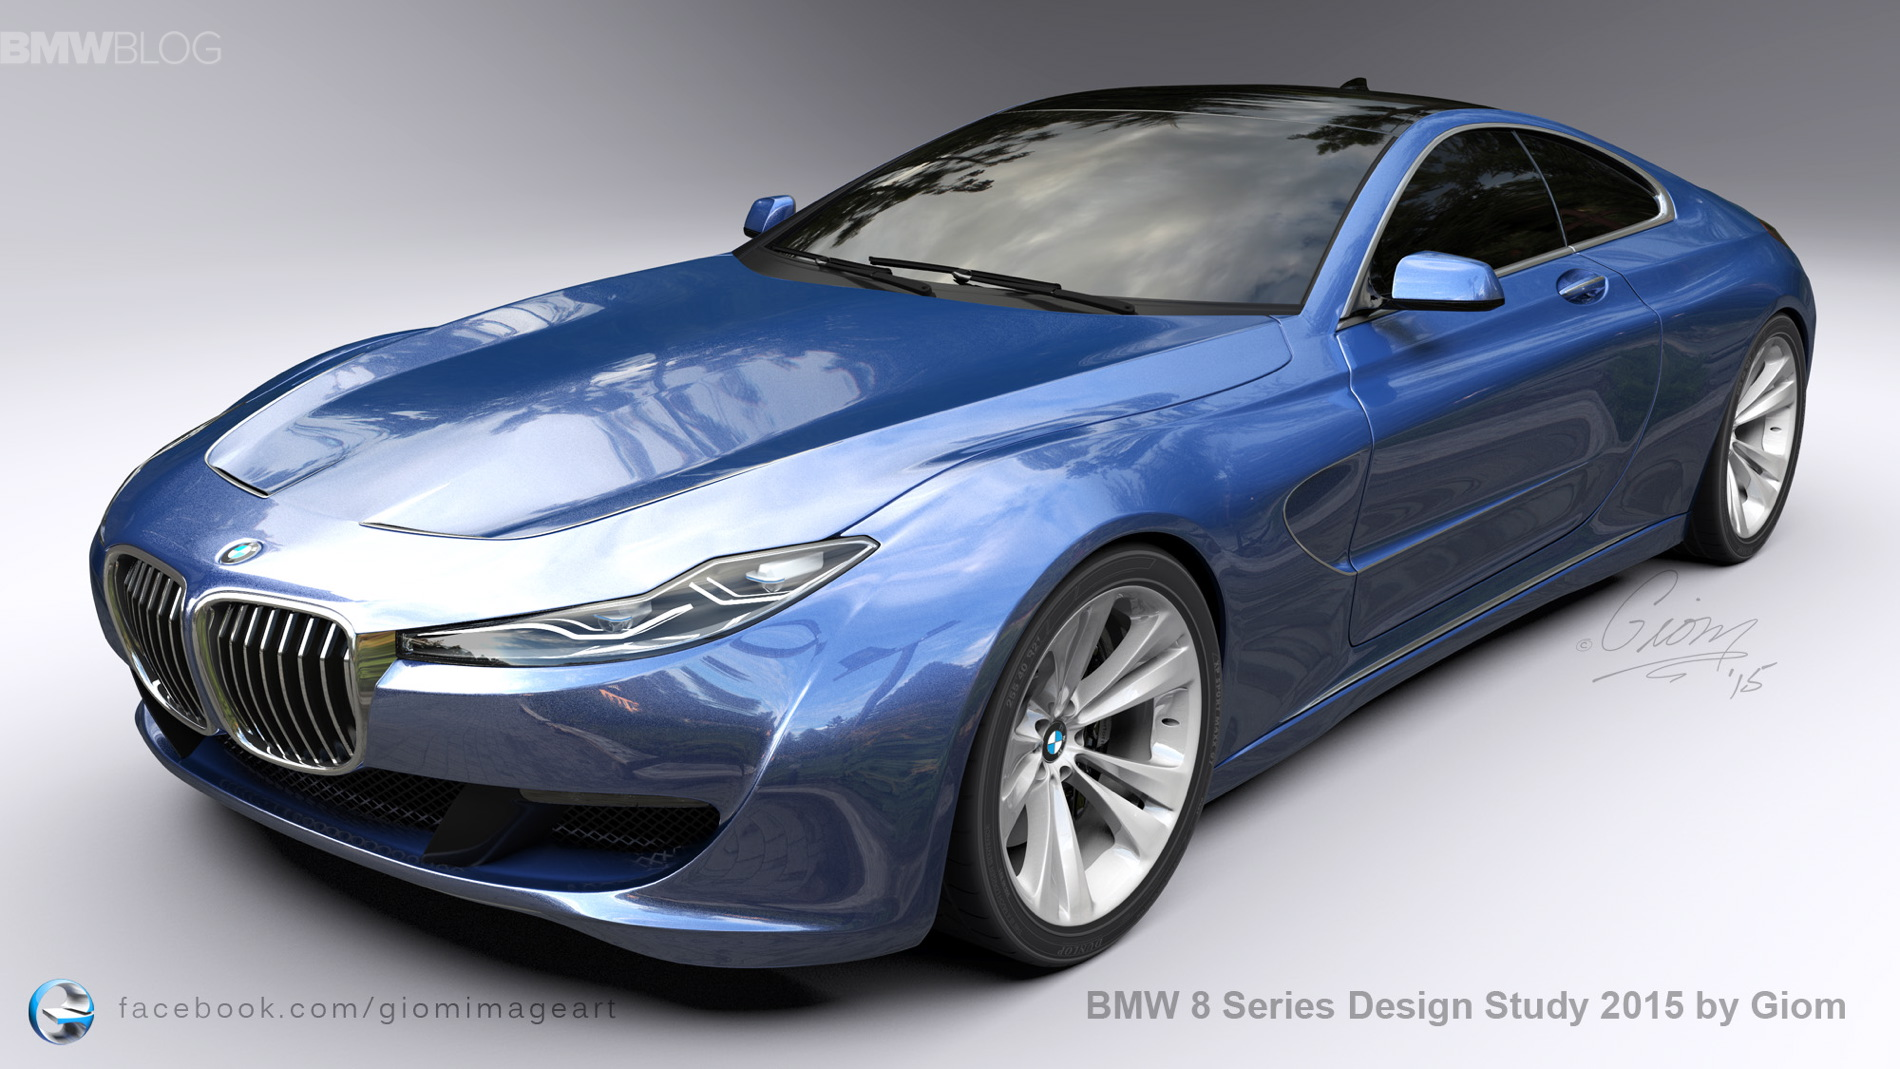 Bmw 8 Series Design Study Aims To Revive The Spirit Of The Legendary Bmw